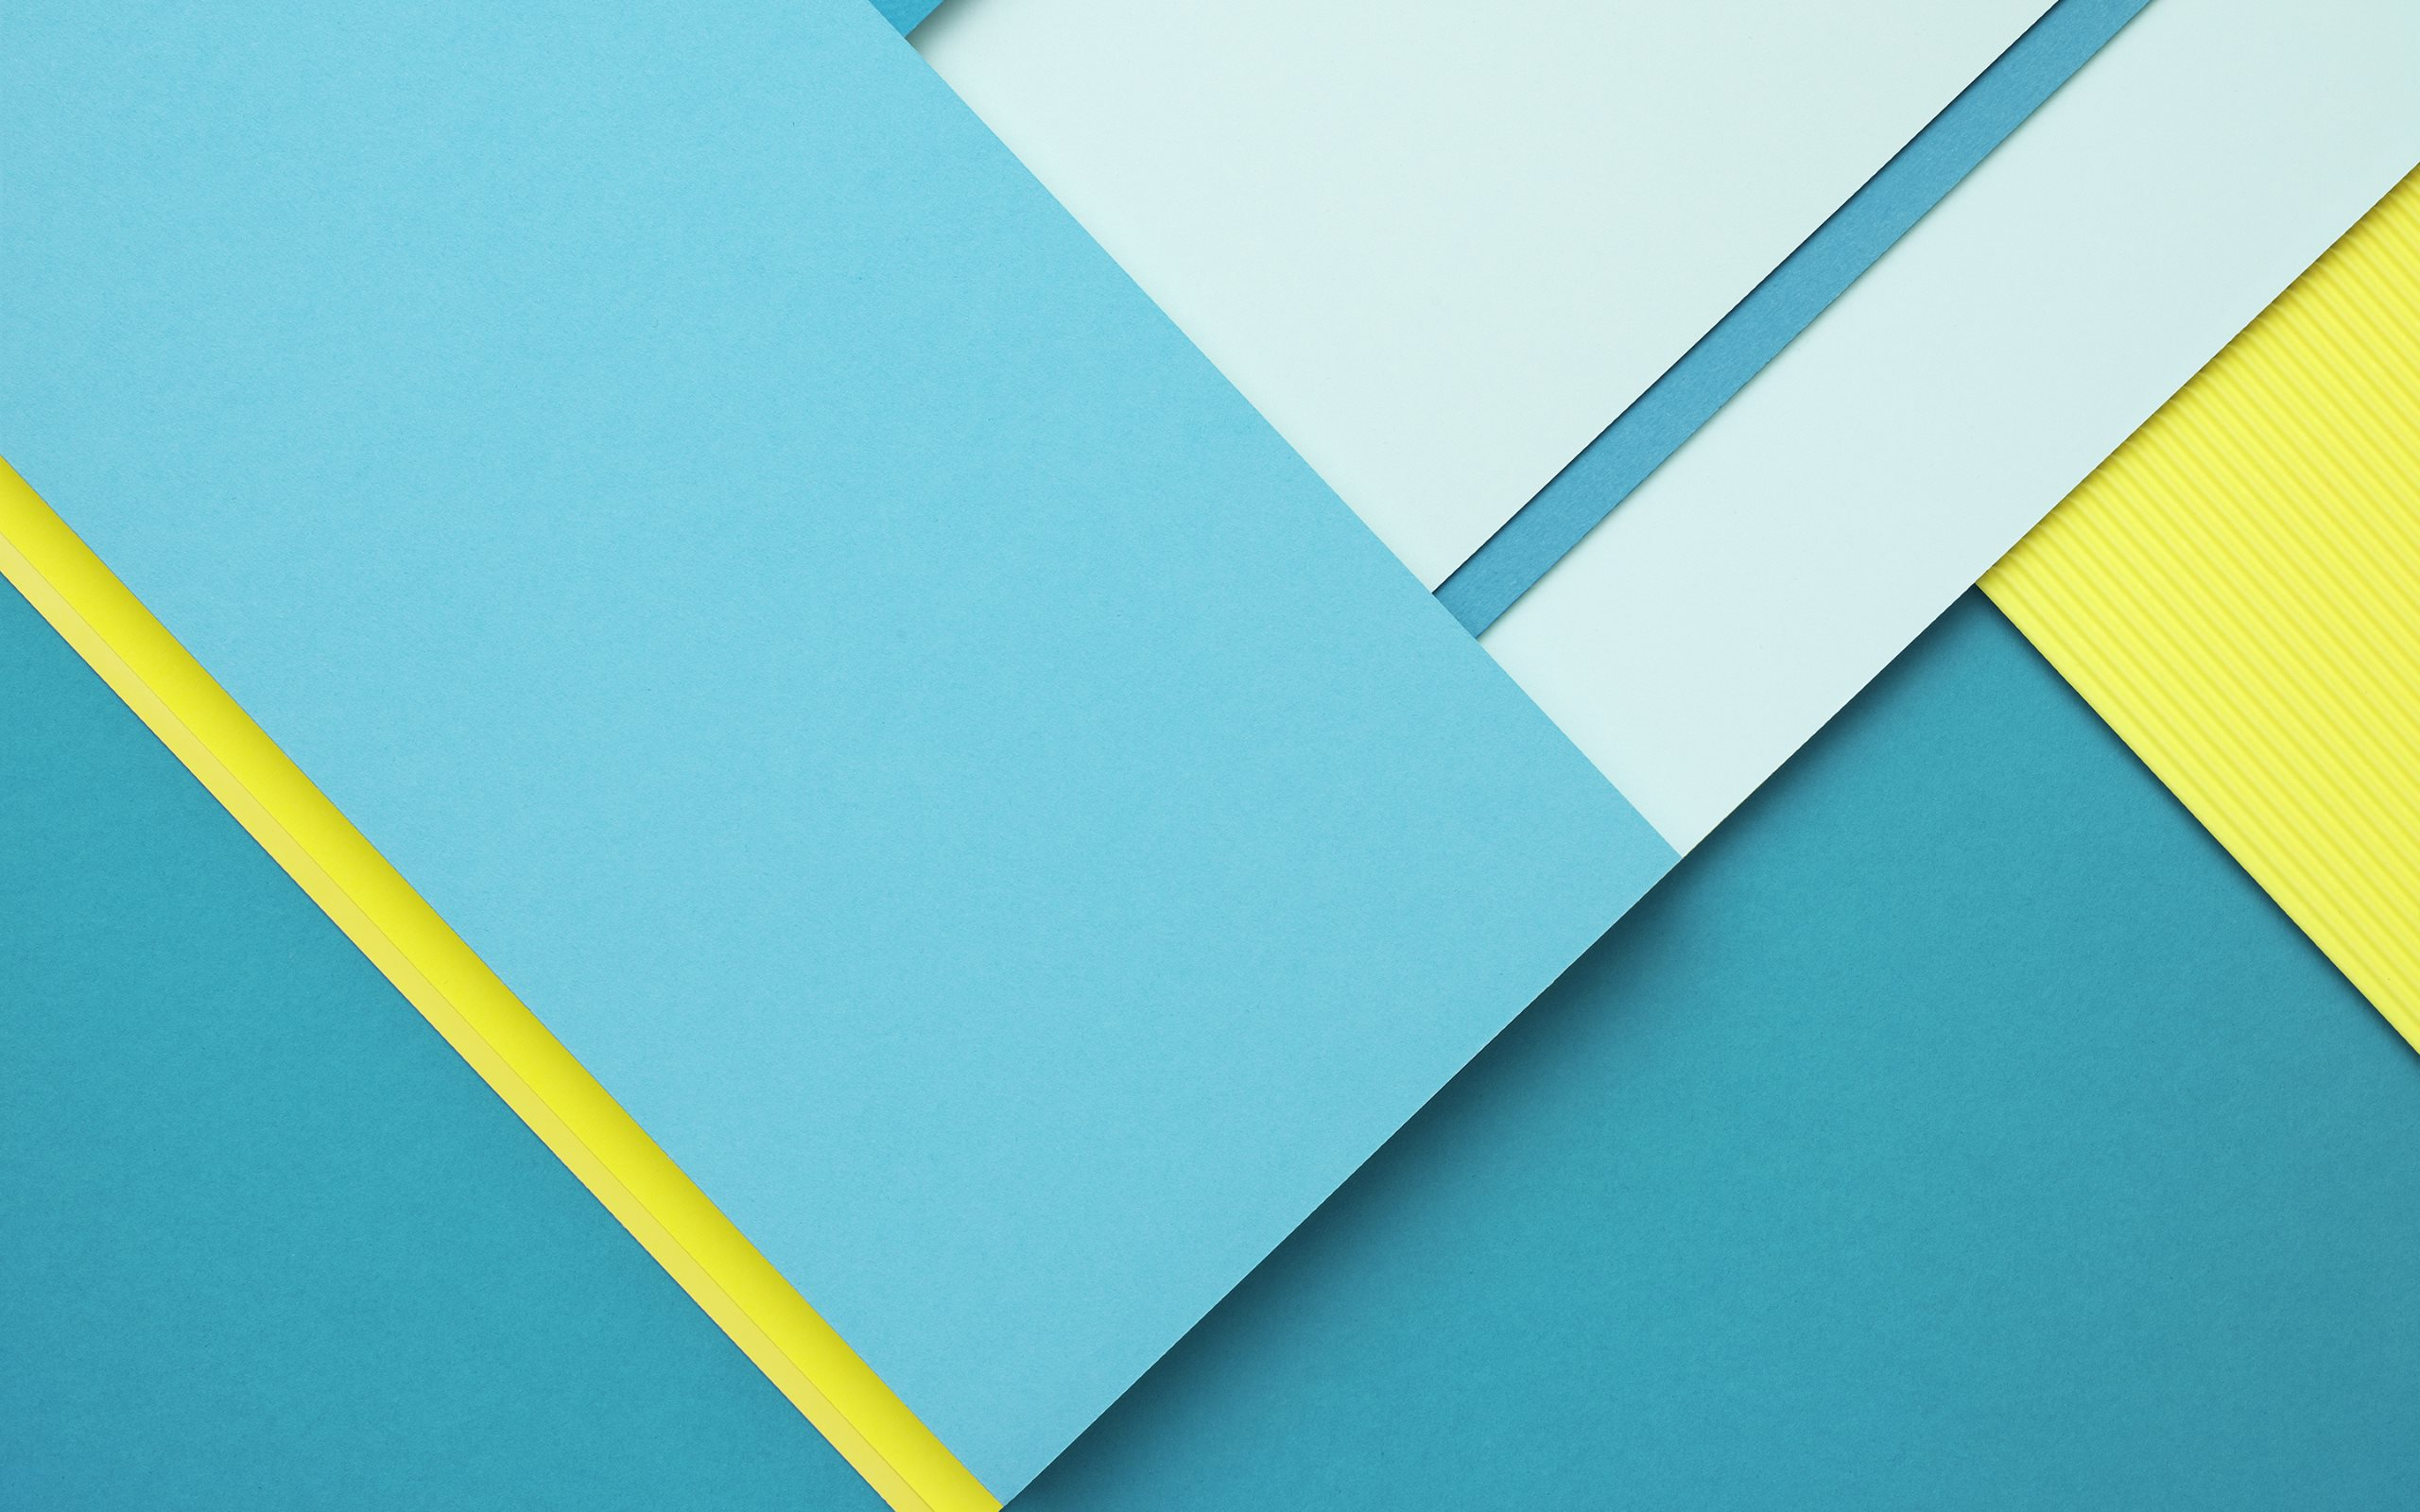 chromebook material design wallpapers